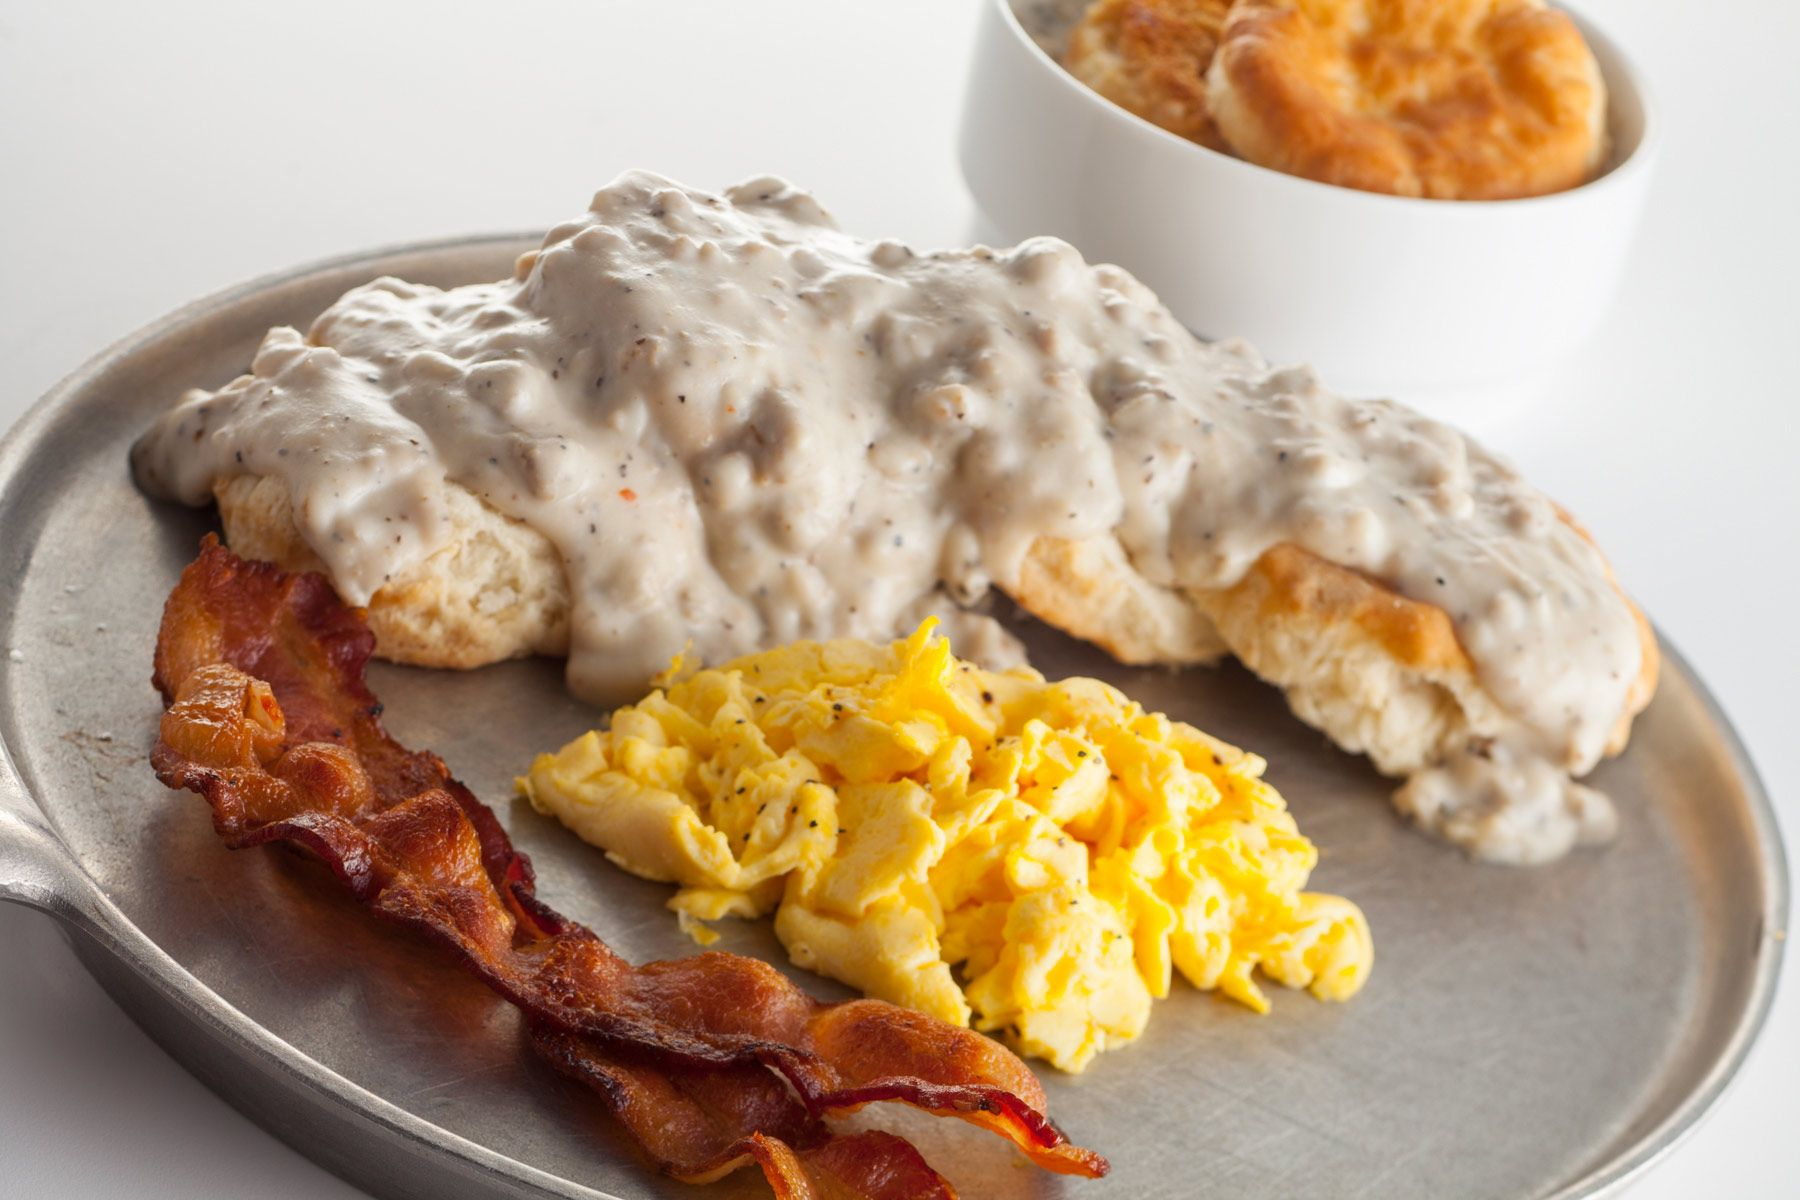 Scrambled-Edds-and-bacon-biscuits-and-grits-Gun-Lake-Casino_300.jpg